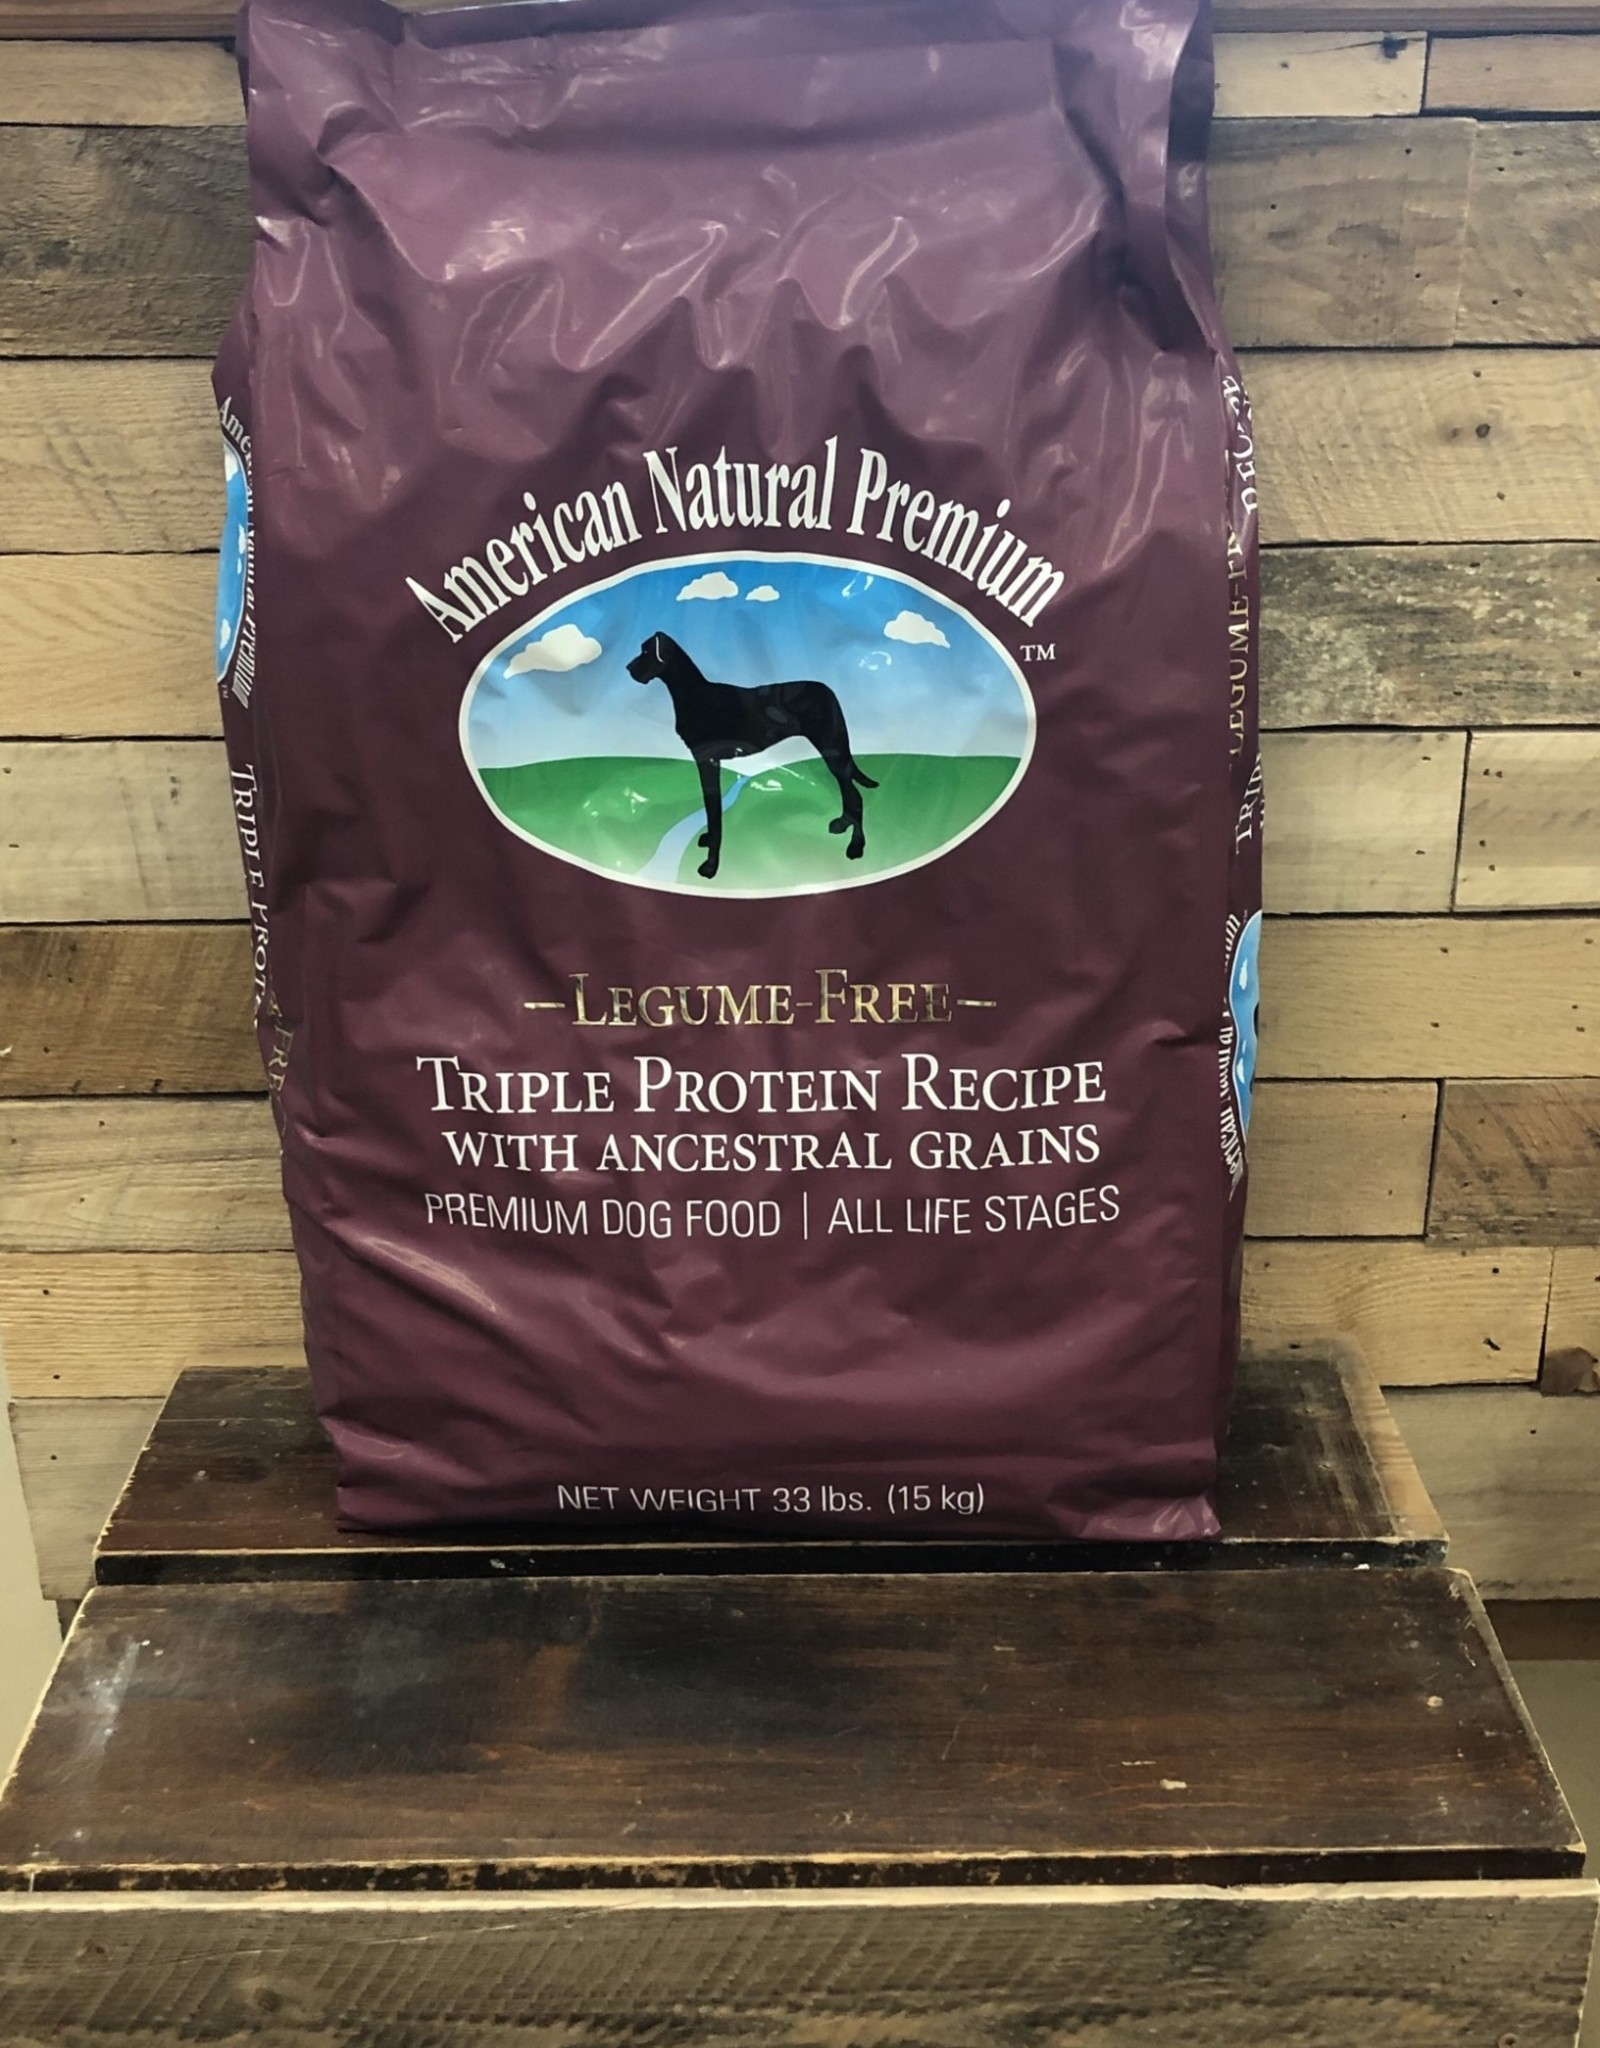 American Natural Premium American Natural Premium Chicken w/Ancestral Grain - 3 sizes